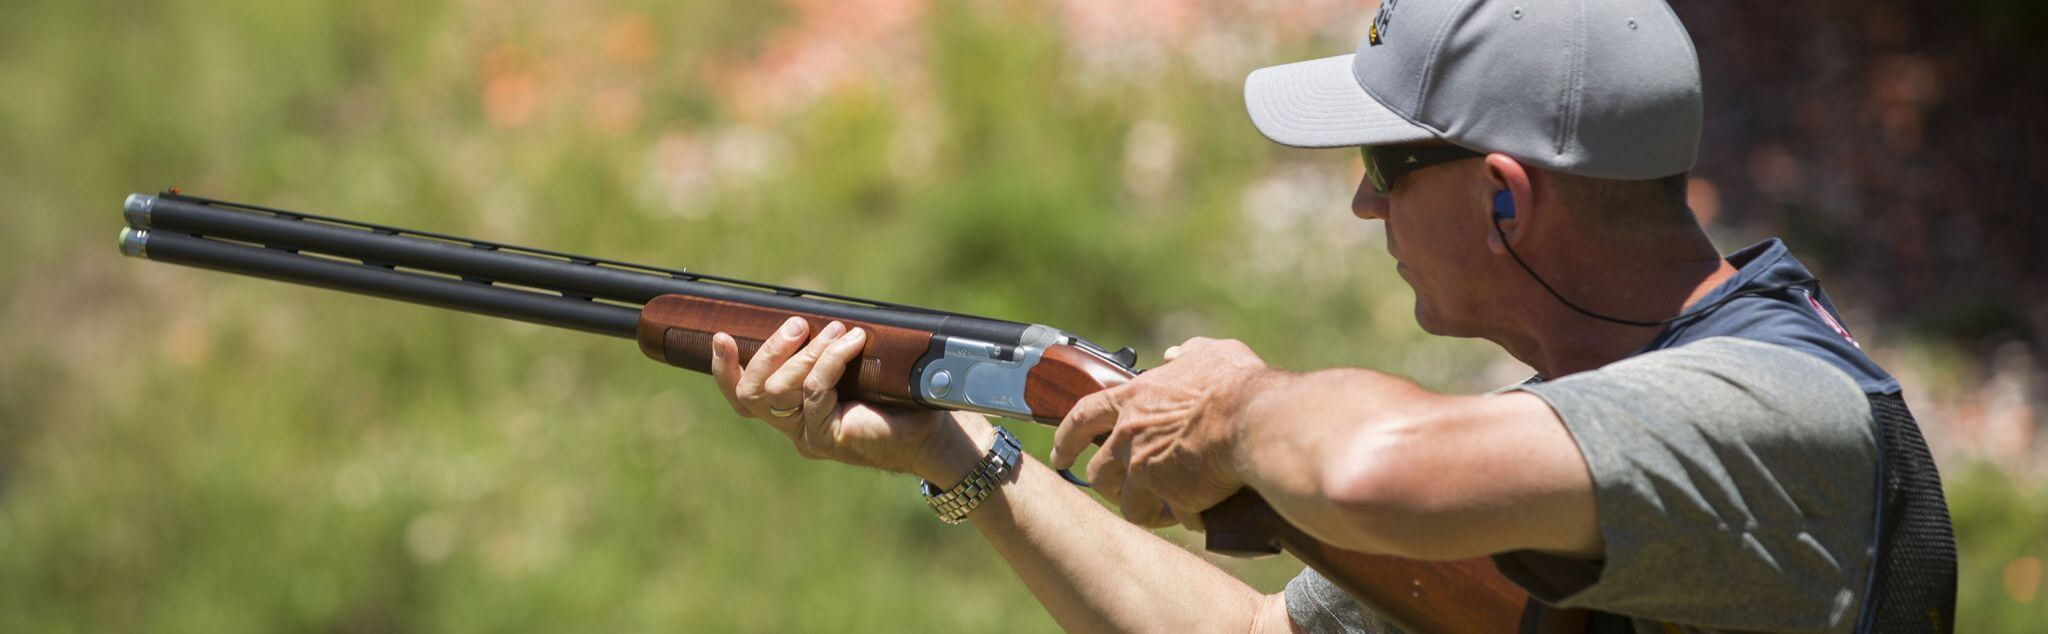 Clay Pigeon Shooting in Cheshire